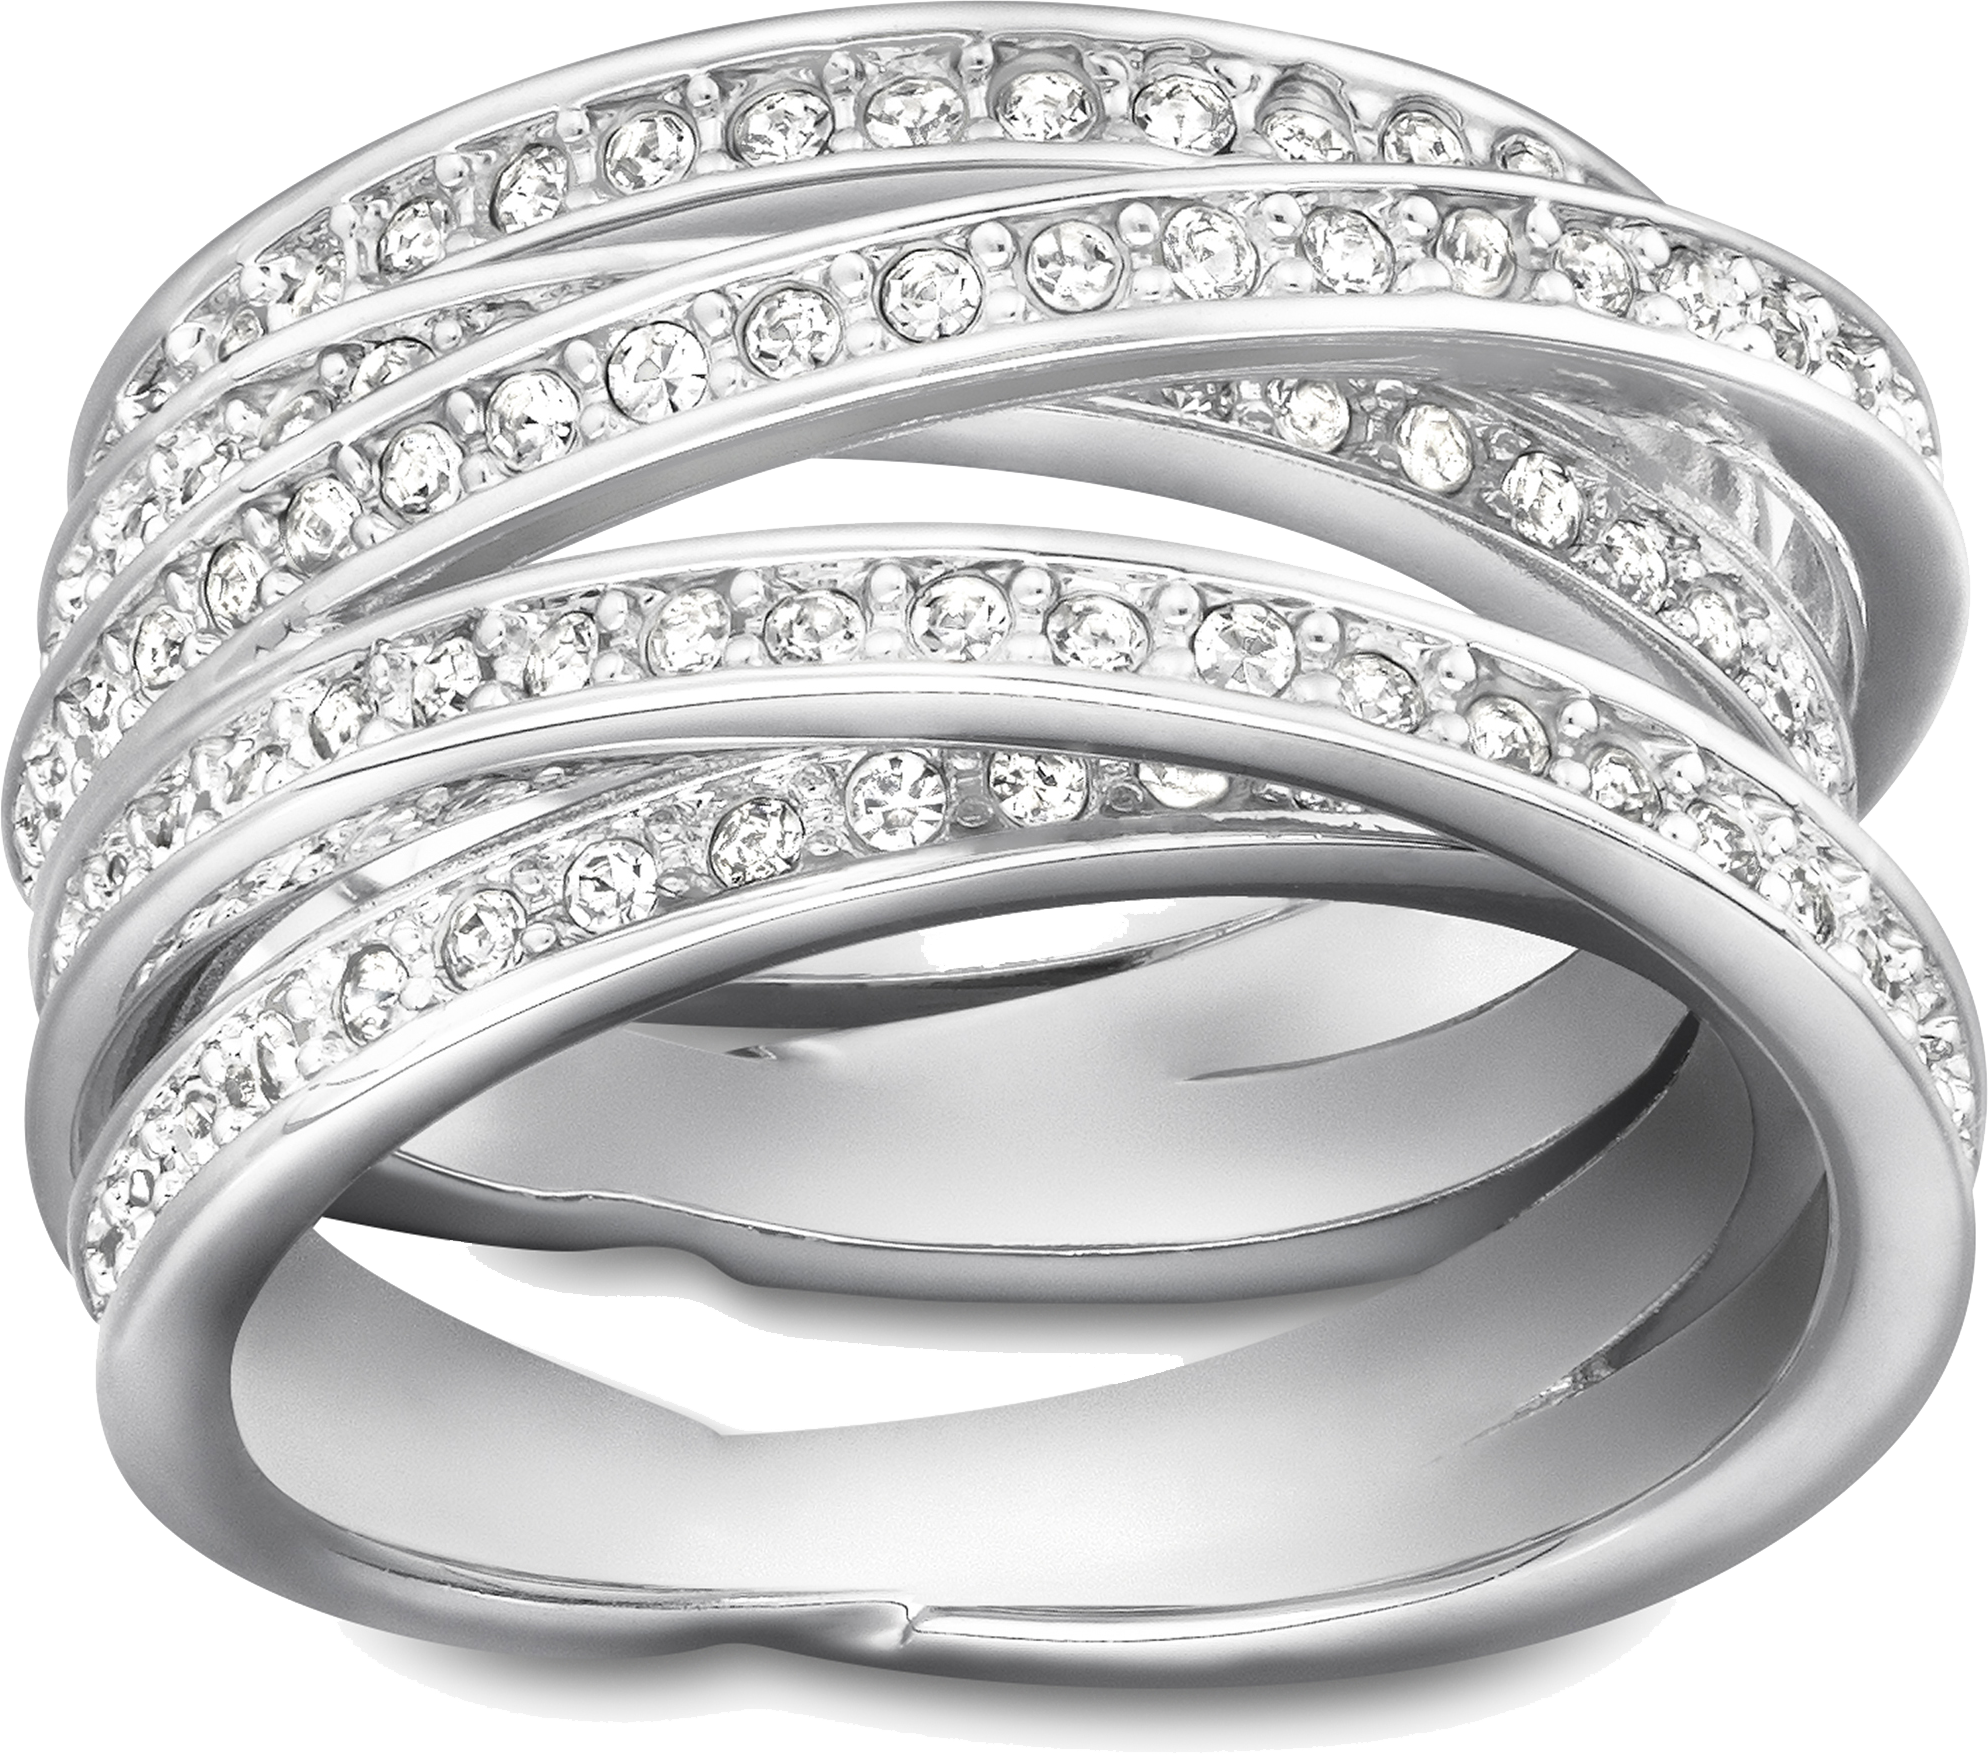 Silver Ring Transparent PNG